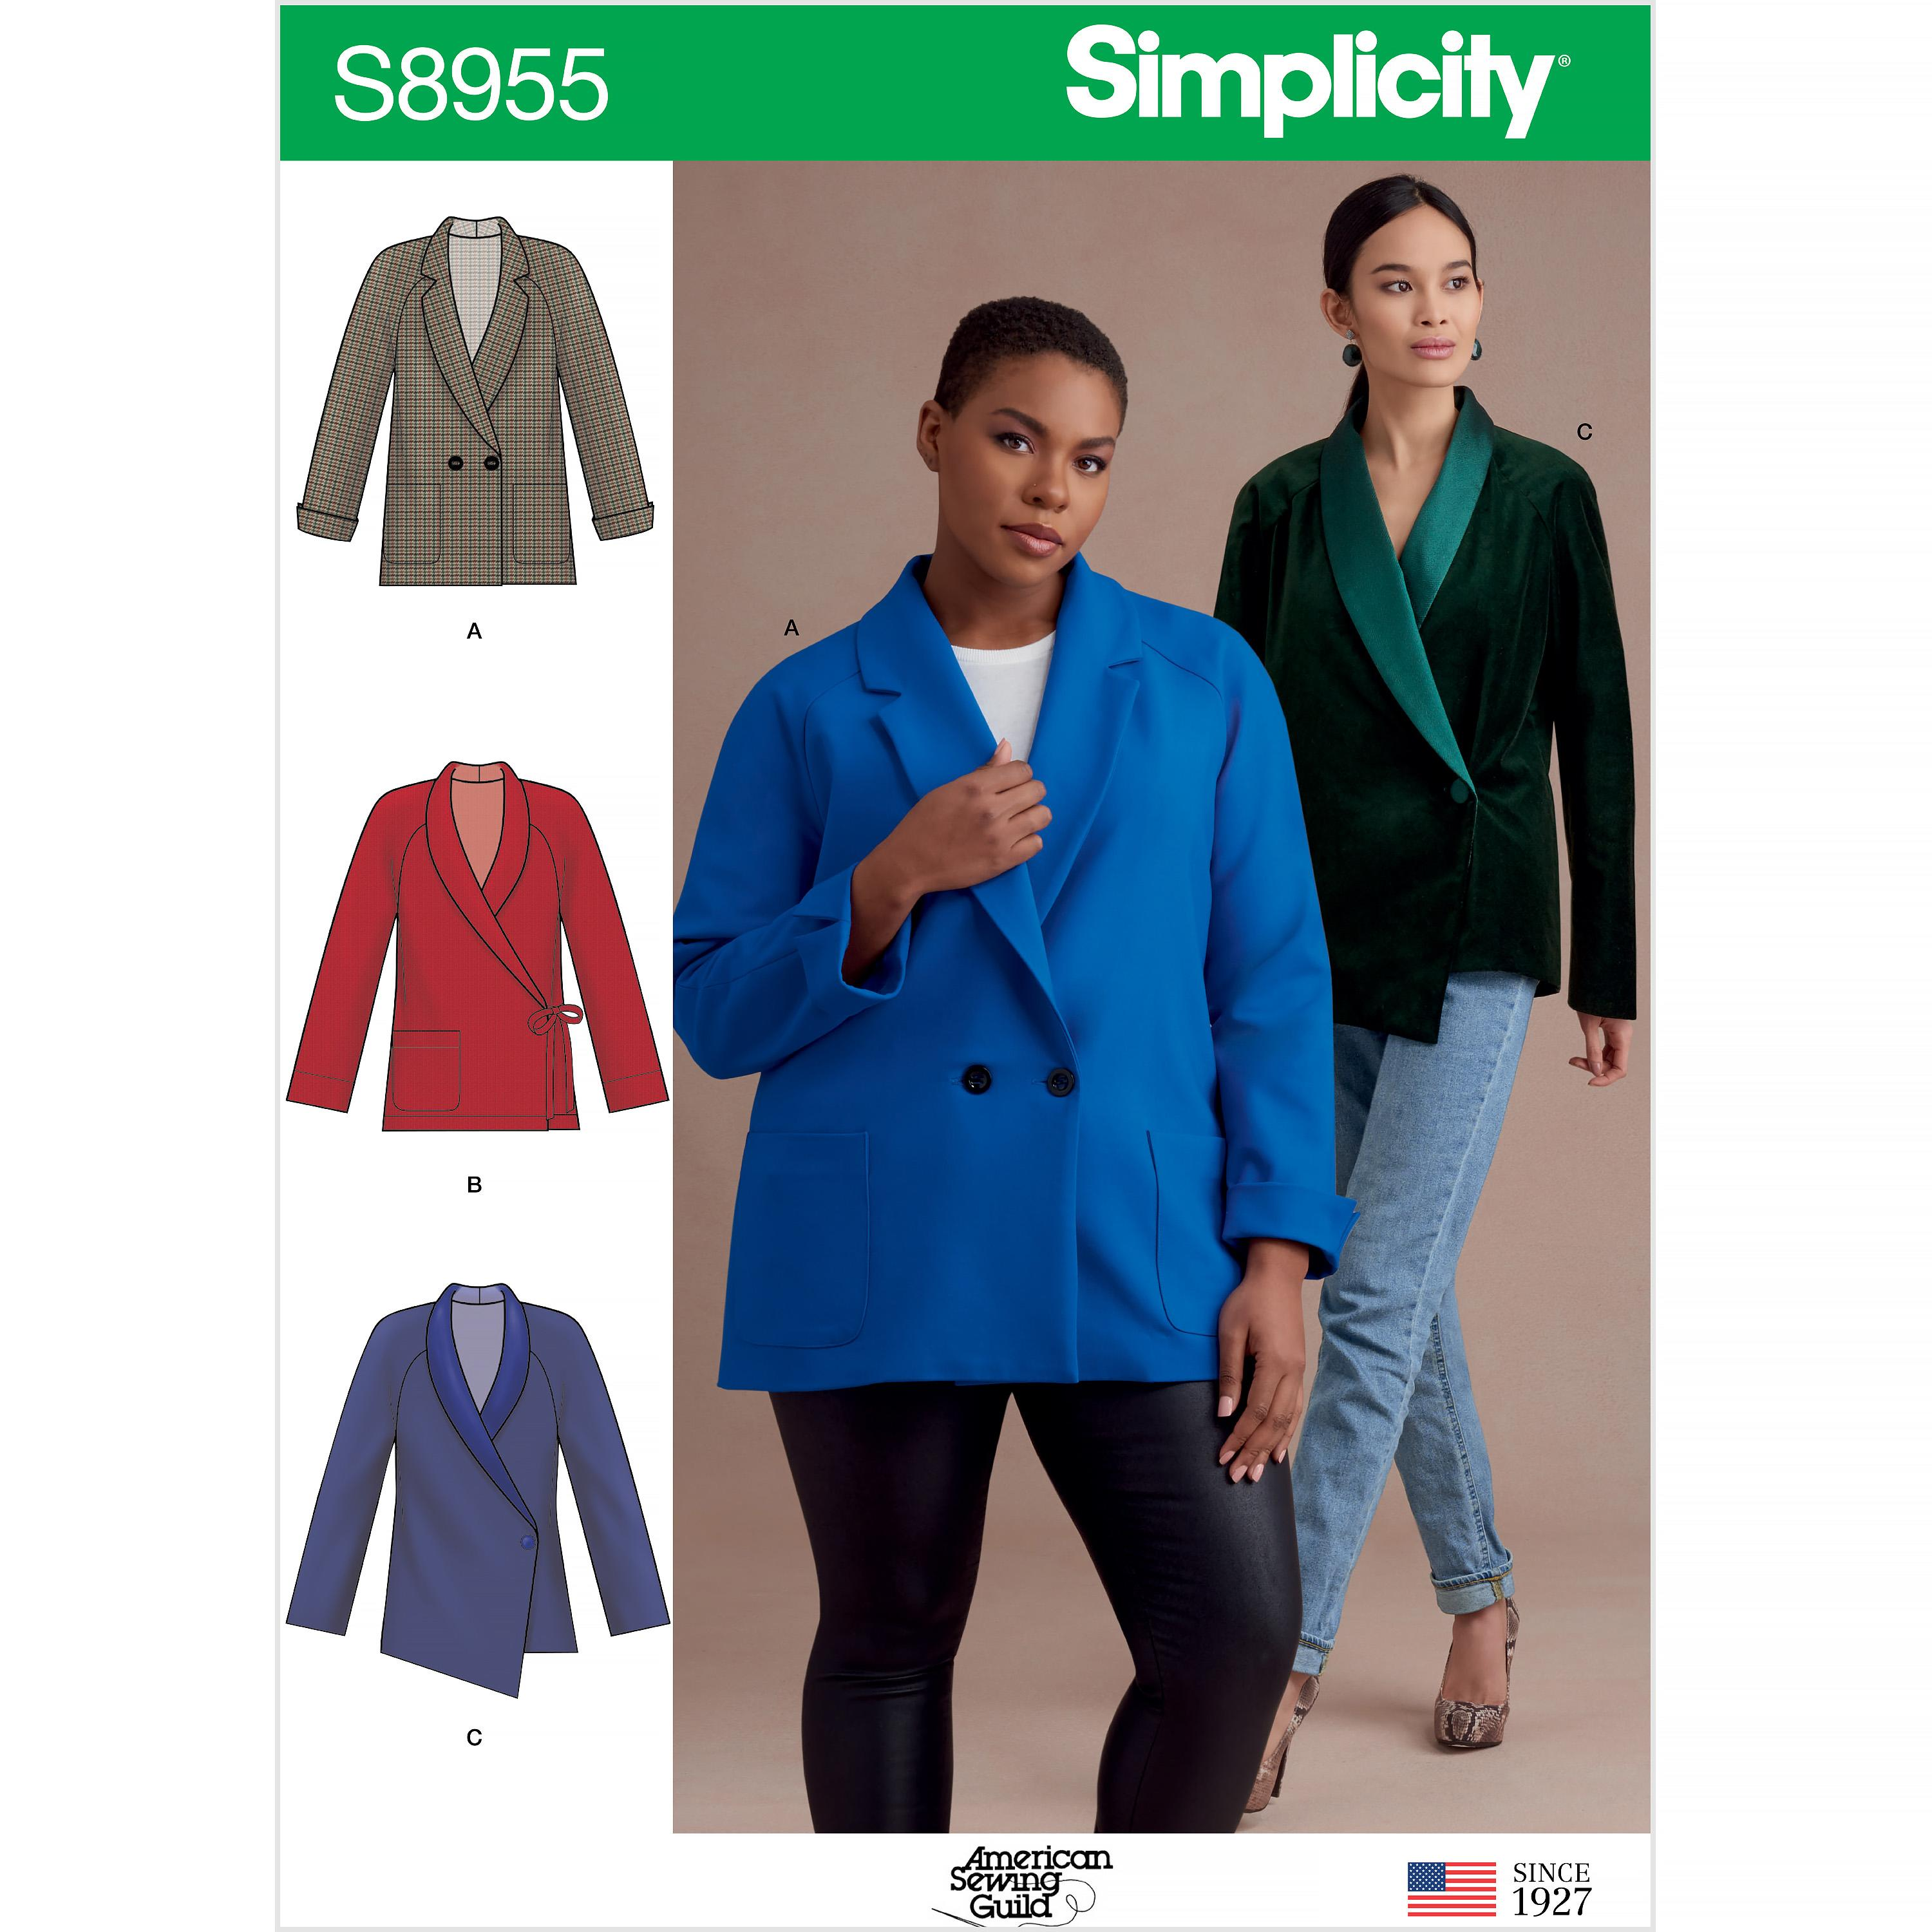 Simplicity S8955 Misses' and Women's Raglan Sleeve Jackets